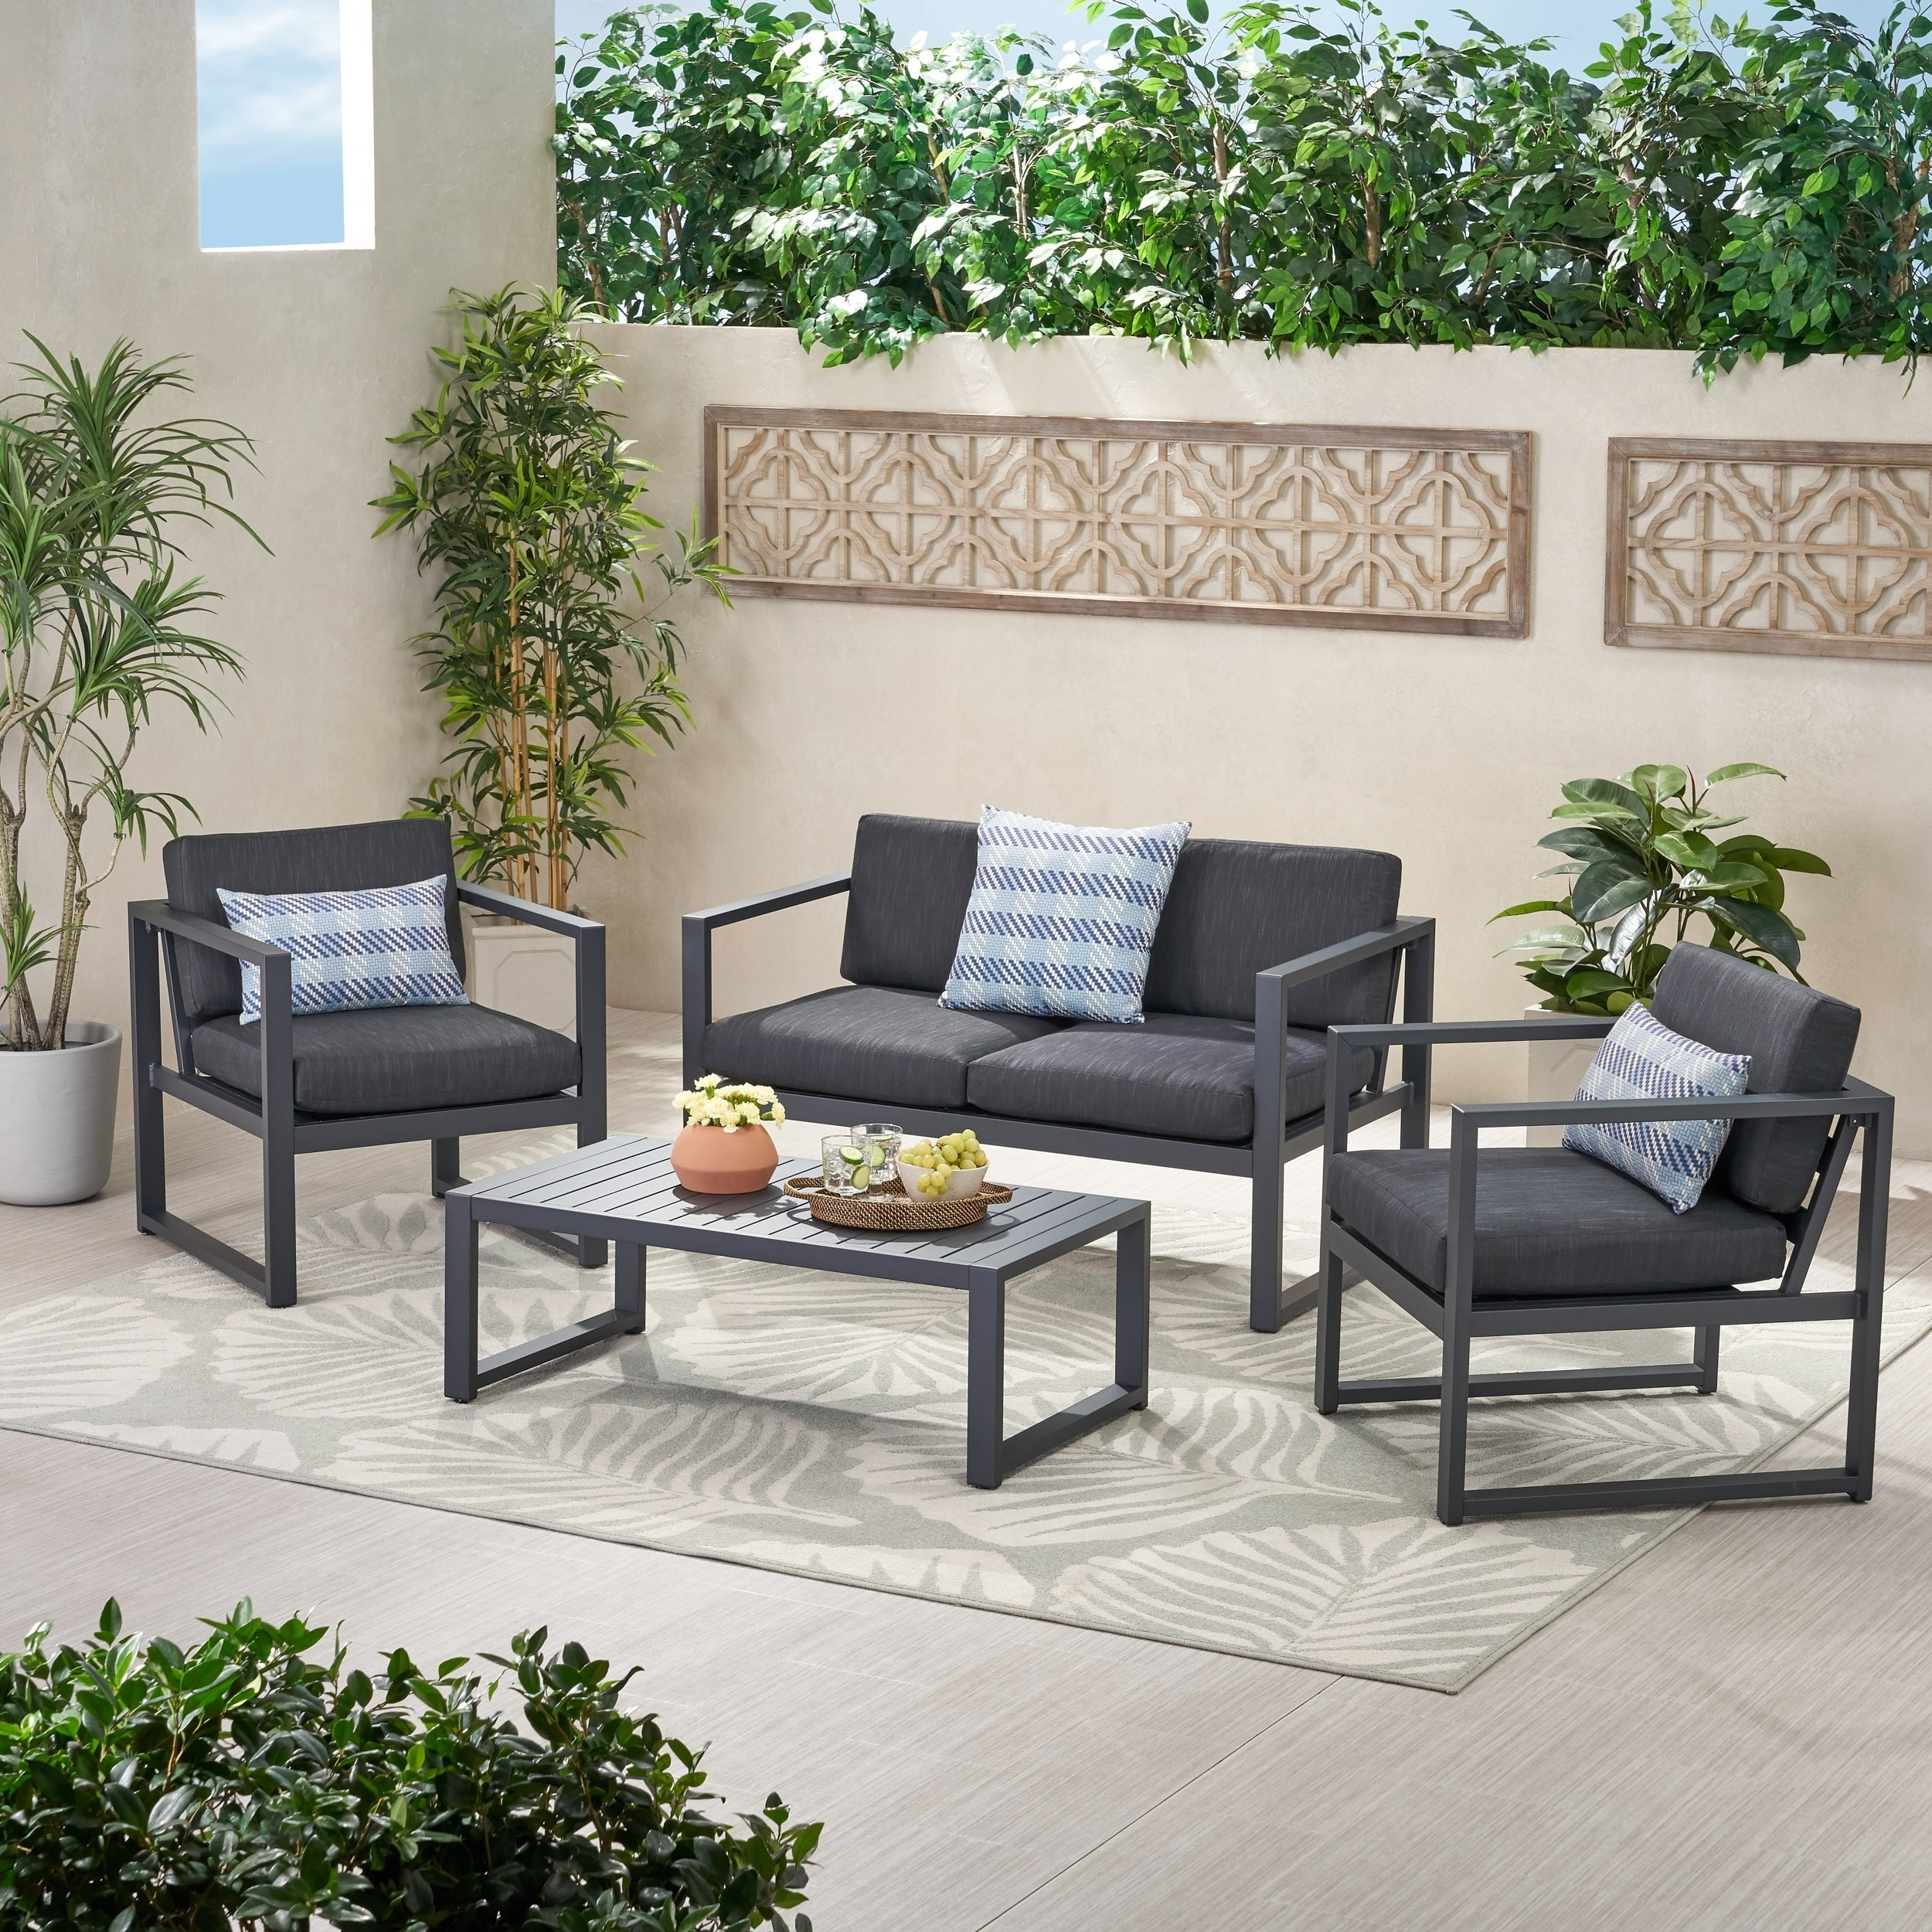 modern contemporary patio furniture find great outdoor seating rh overstock com contemporary patio furniture uk contemporary patio furniture miami